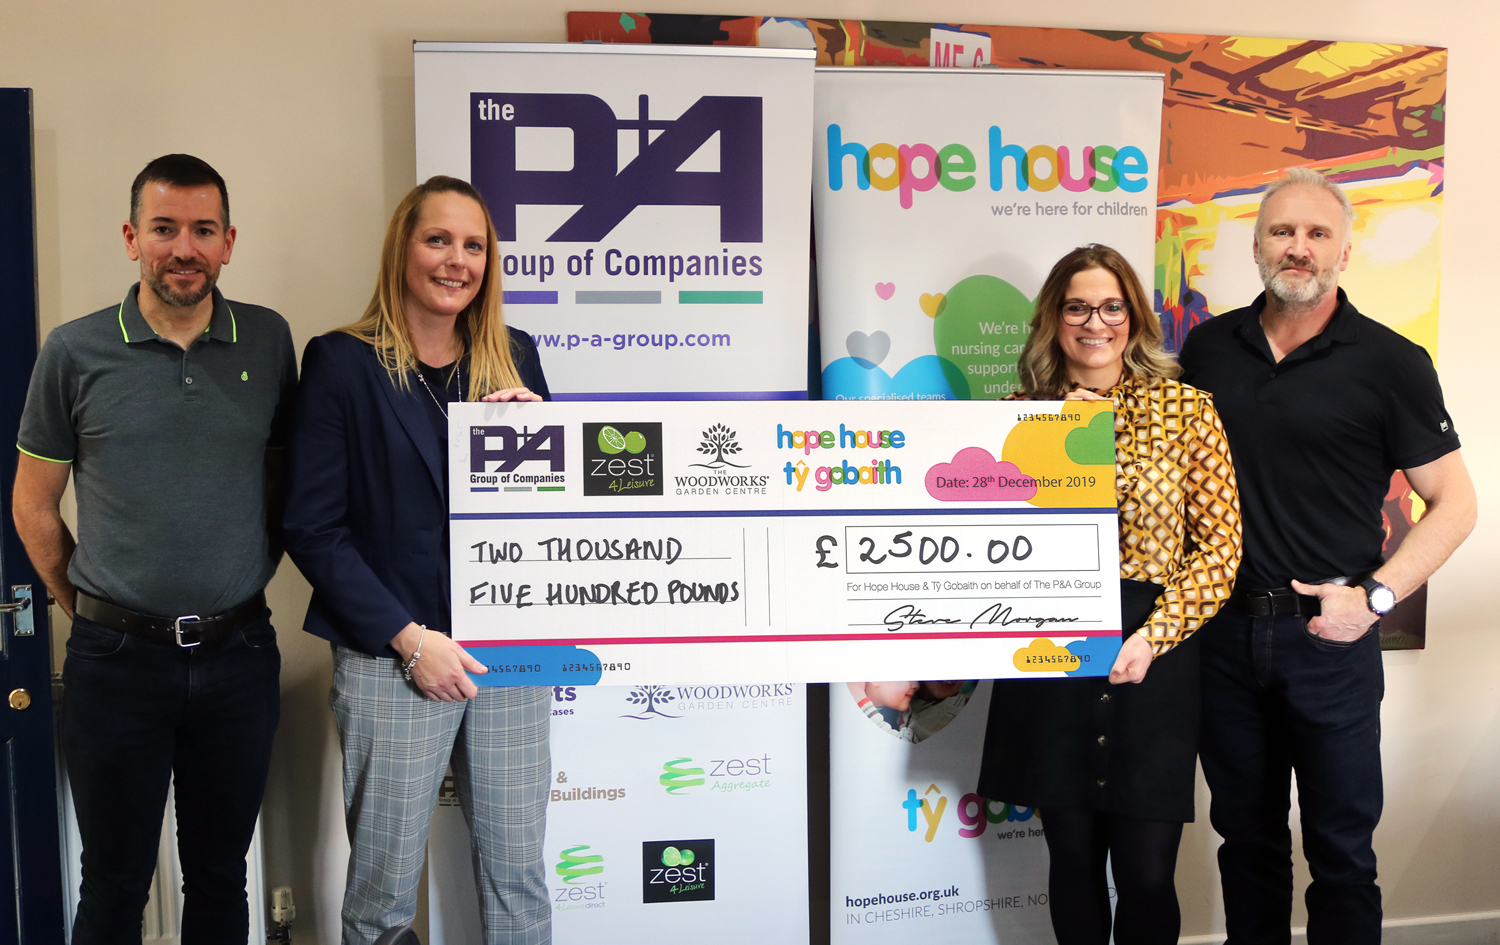 P&A Group donates £2,500 to Hope House Children's Hospice